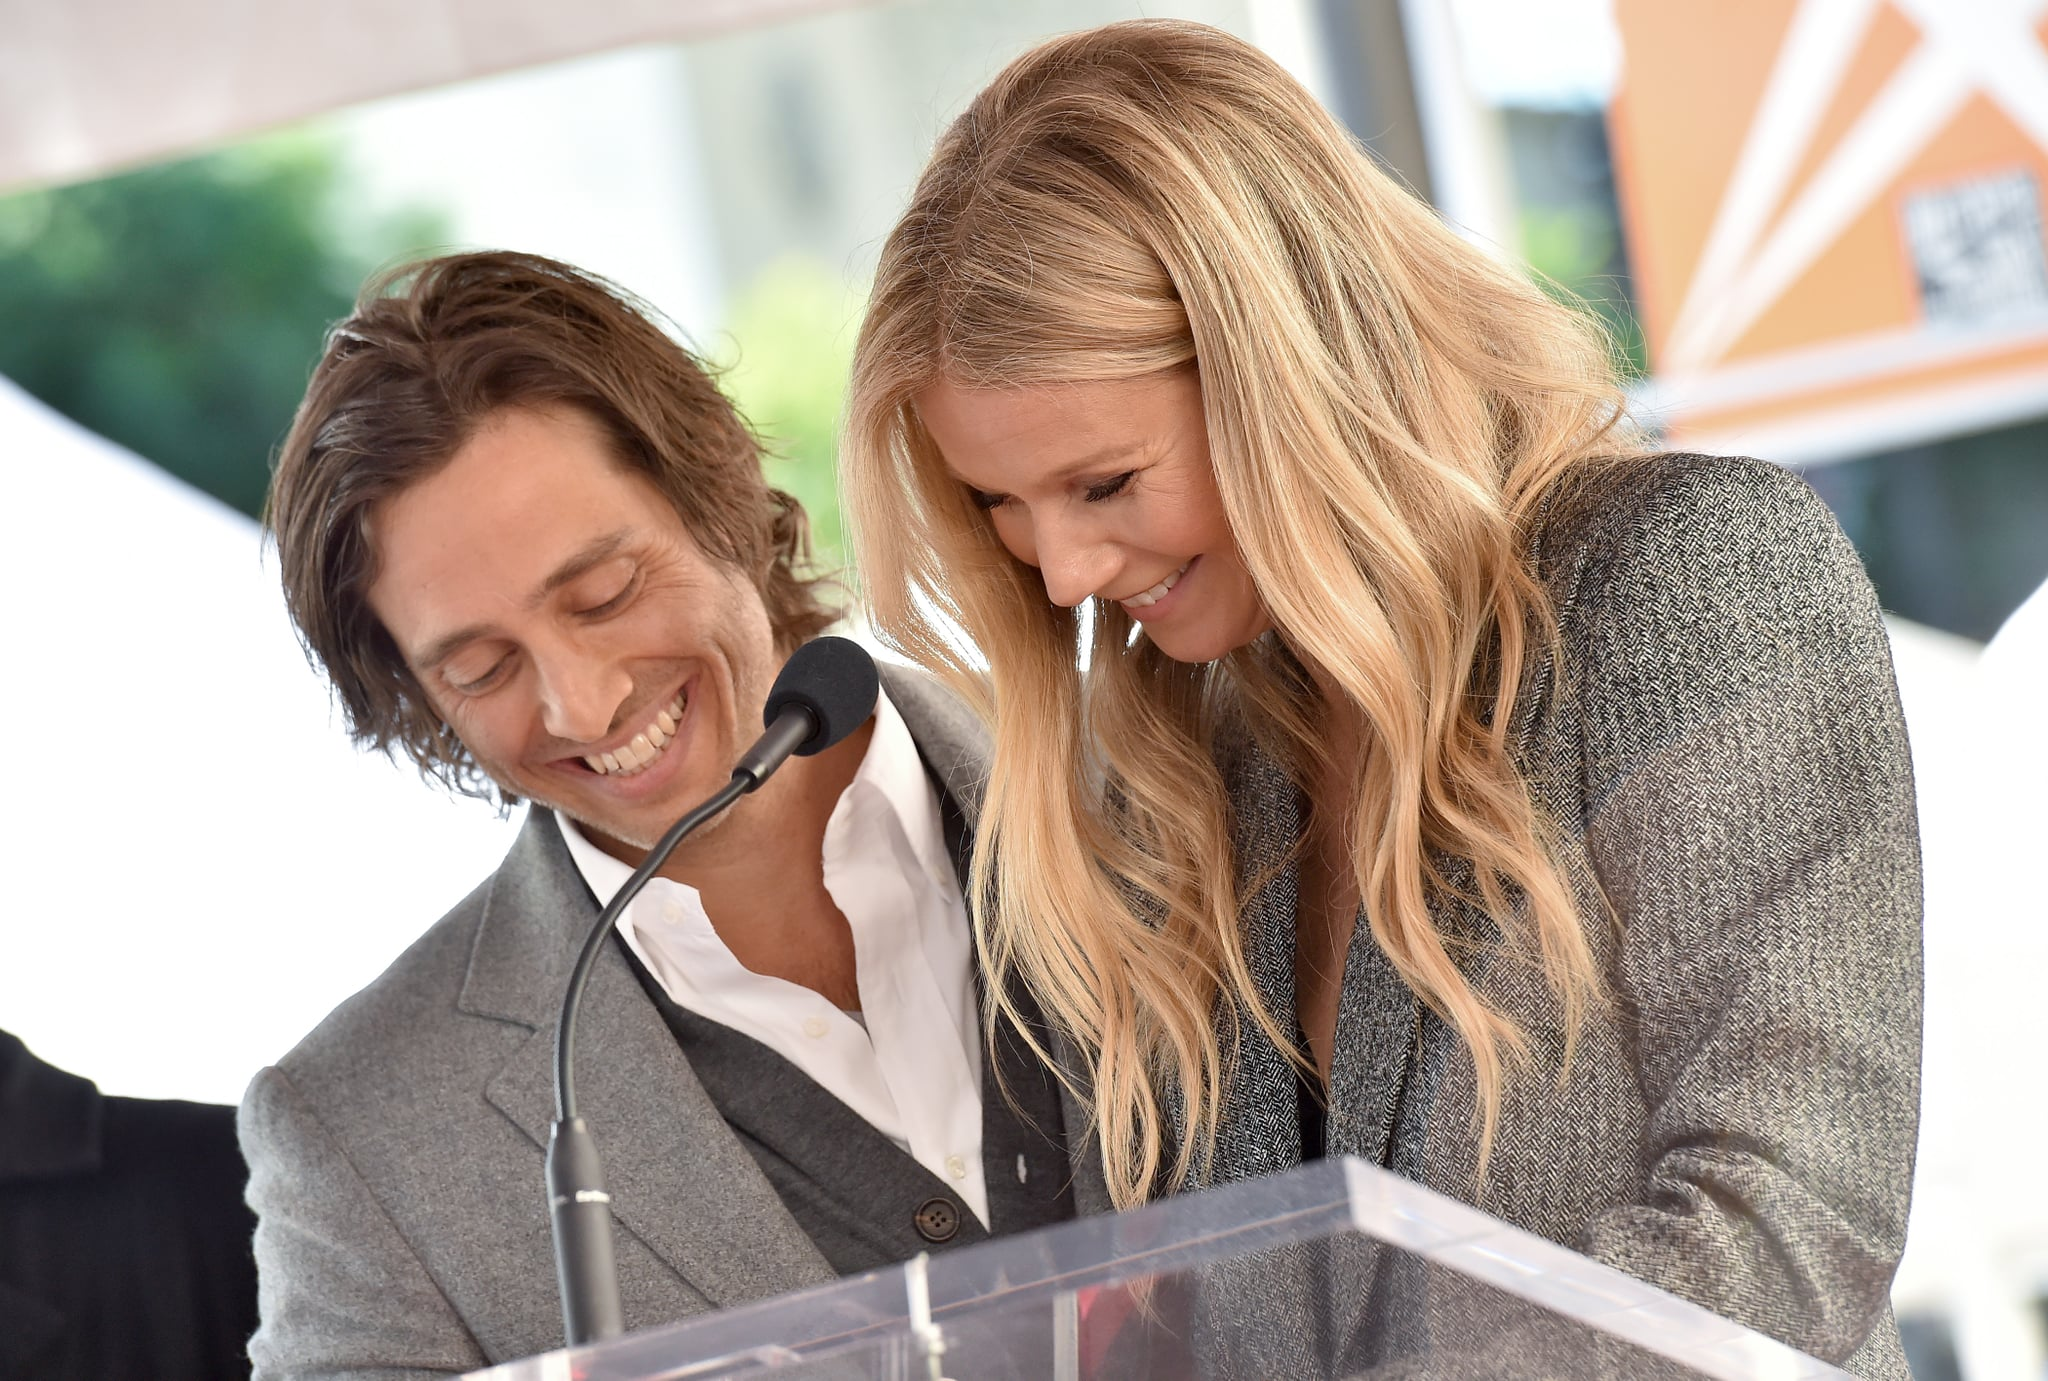 HOLLYWOOD, CA - DECEMBER 04:  Brad Falchuk and Gwyneth Paltrow attend the ceremony honouring Ryan Murphy with star on the Hollywood Walk of Fame on December 4, 2018 in Hollywood, California.  (Photo by Axelle/Bauer-Griffin/FilmMagic)